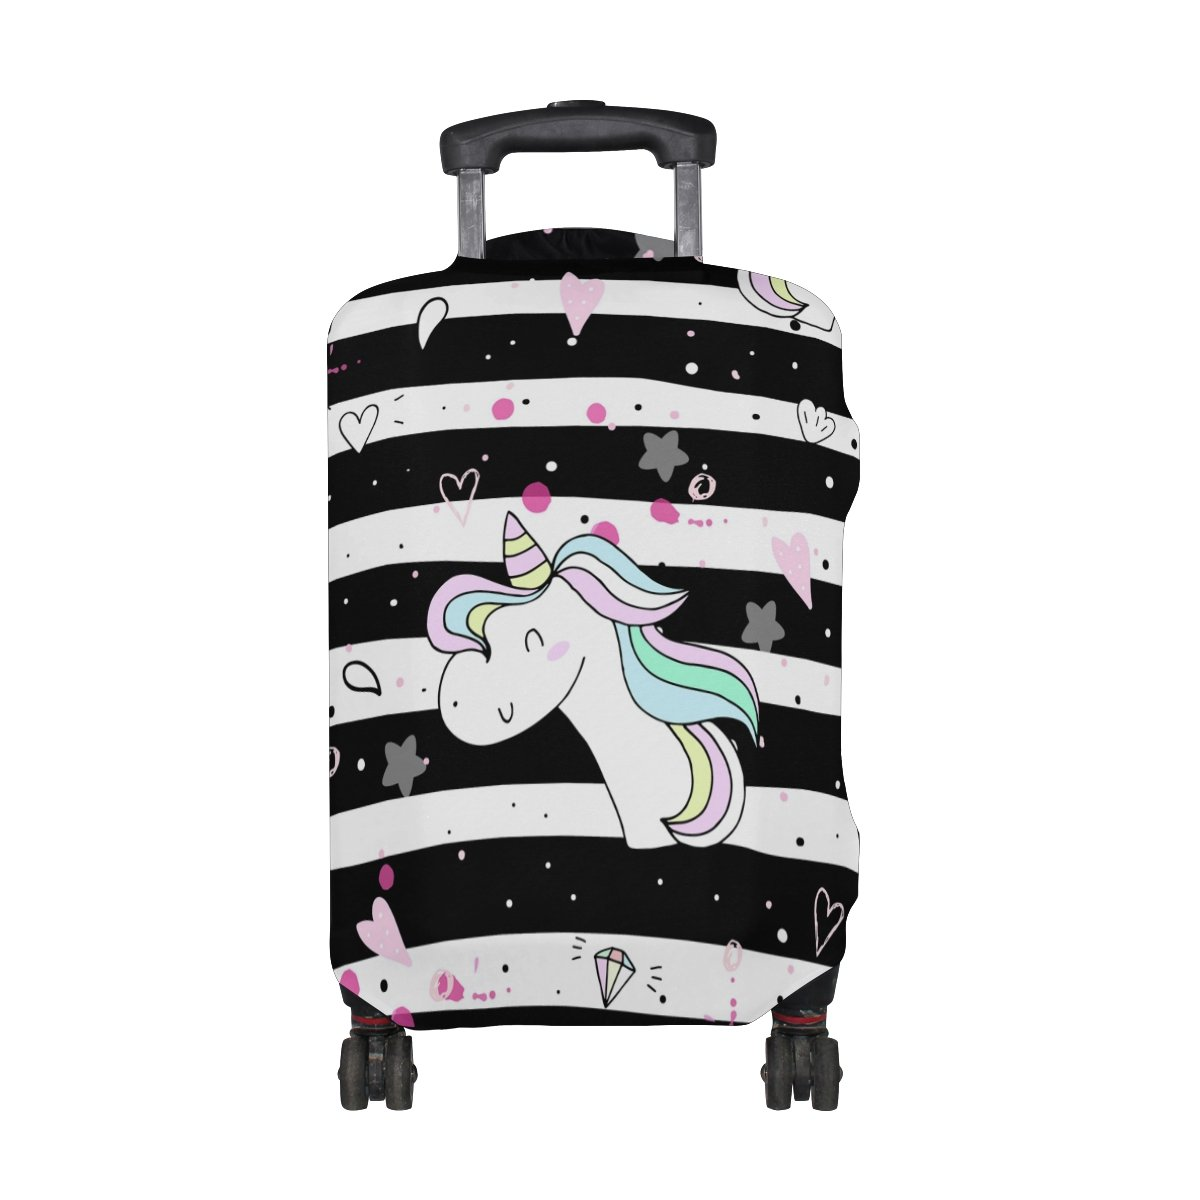 GIOVANIOR Unicorns And Stars Luggage Cover Suitcase Protector Carry On Covers